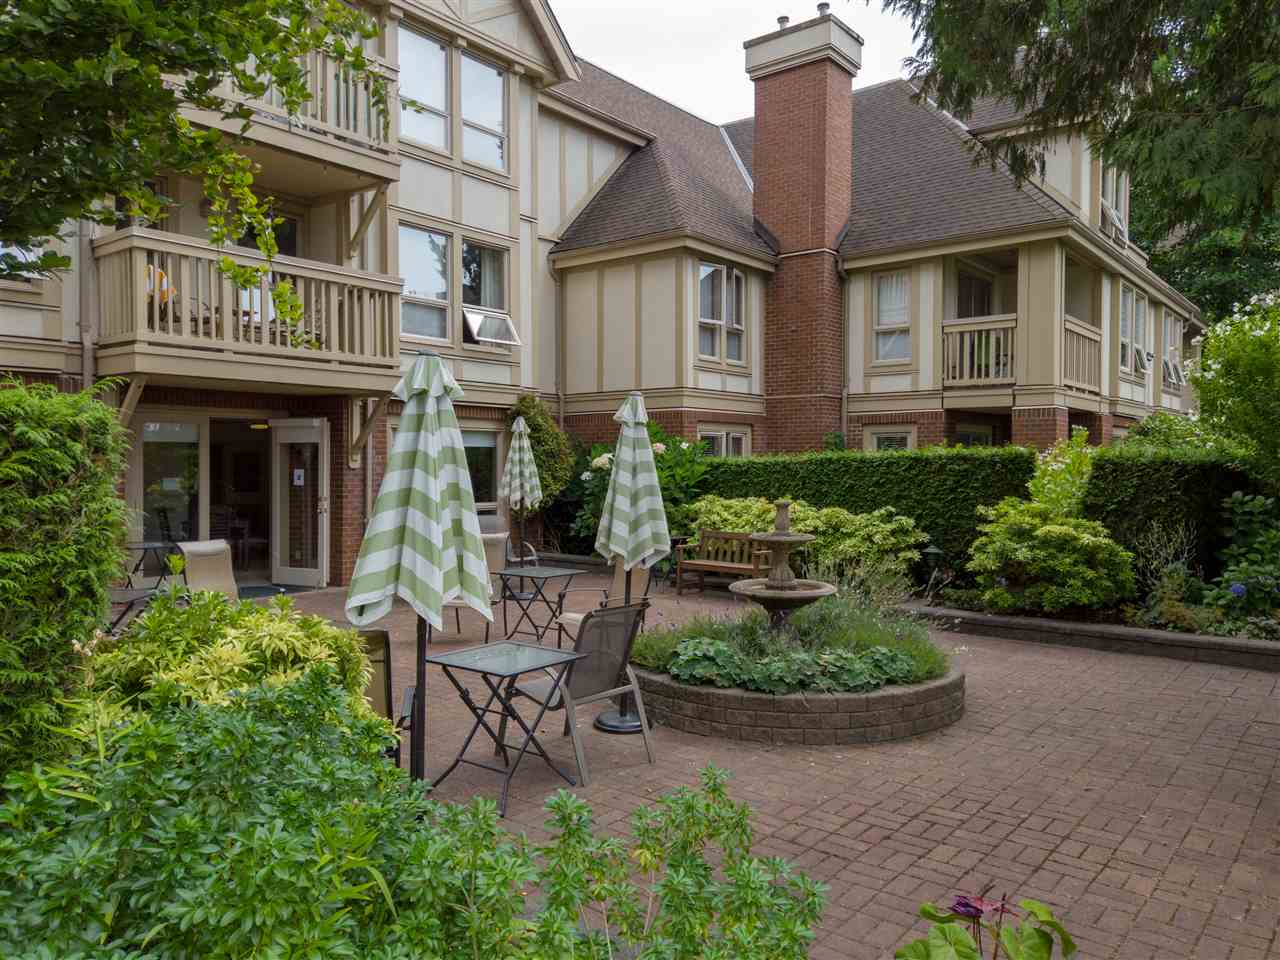 207 843 22ND STREET - Dundarave Apartment/Condo for sale, 1 Bedroom (R2497101) - #15